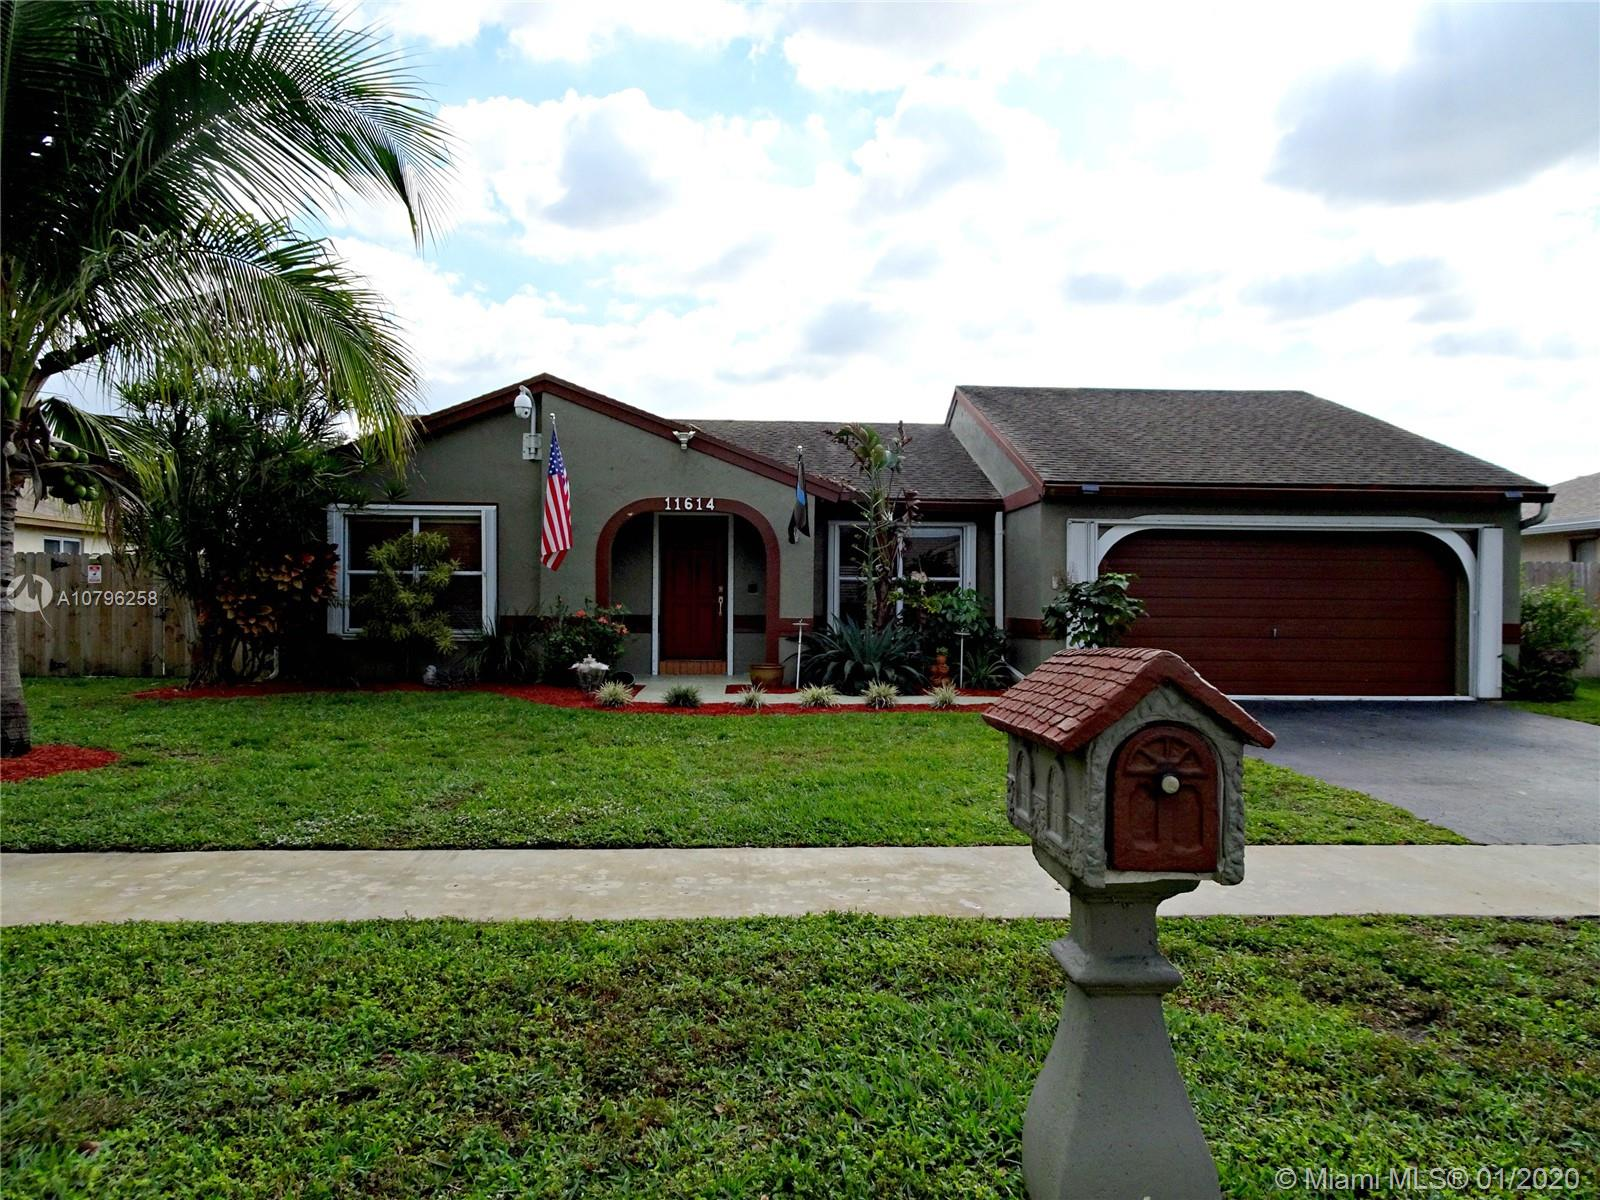 """OPEN THIS SATURDAY 2-4.  SUNDAYS OPEN CANCELLED.  Located in the A+ school system of Cooper City & the desirable Flamingo Gardens West neighborhood.Take notice of the gorgeous engineered cherry wood flooring that flows from rm to rm.Freshly painted interior in neutral colors & vaulted ceilings give an airy spacious feel.The living rm-dining rm lead to the kitchen with raised panel cabinets,SS appliances & granite counters.Off the kitchen is the family rm featuring a cedar wall & 65"""" LG TV & smaller flat screen that is wired to the security camera system (all included!)Split plan with 2 bedrms & an updated bathroom (tub/shower)& a large master en-suite with updated bathrm(TV stays).HUGE all seasons room (20x23)& fenced back yard with workshop/shed.Double gate and BOAT pad too!NO HOA!!!"""